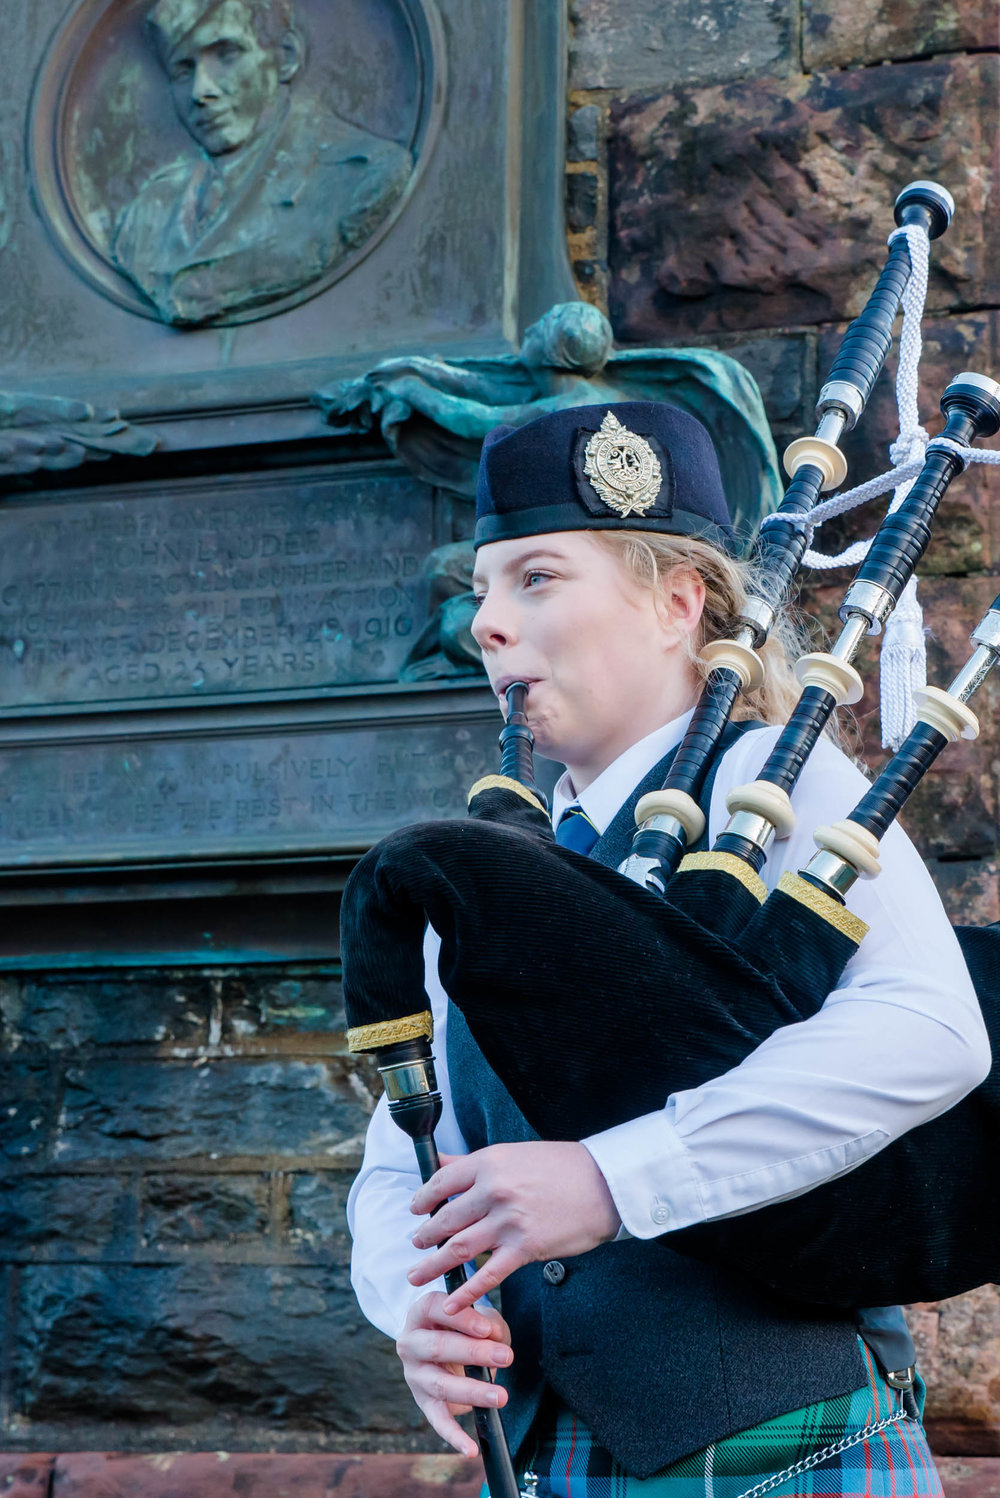 Local-Bagpipes-Argyll-7670.jpg